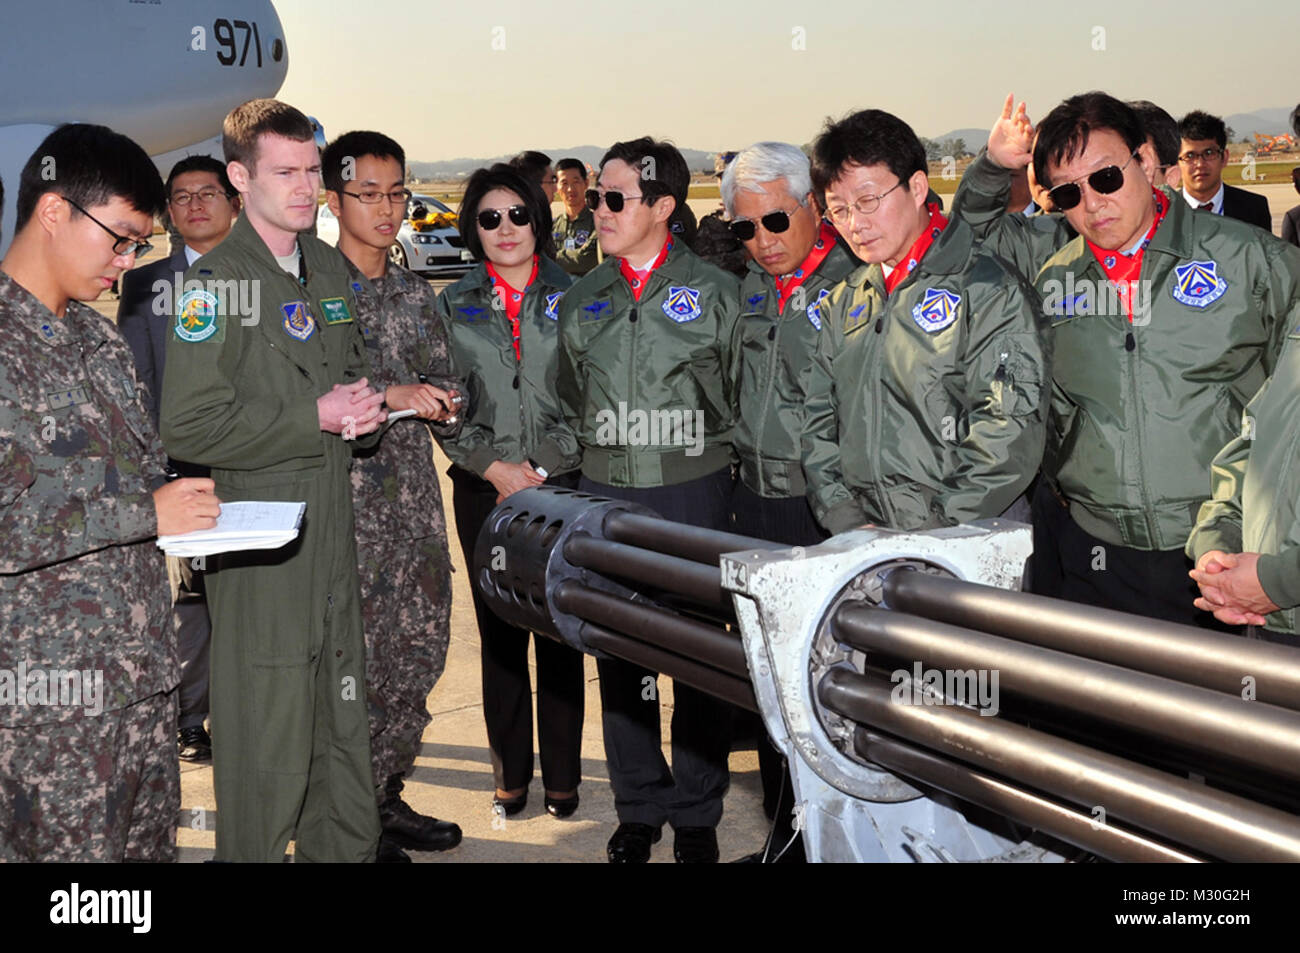 The assembly members toured static displays of U.S. A-10 by #PACOM - Stock Image